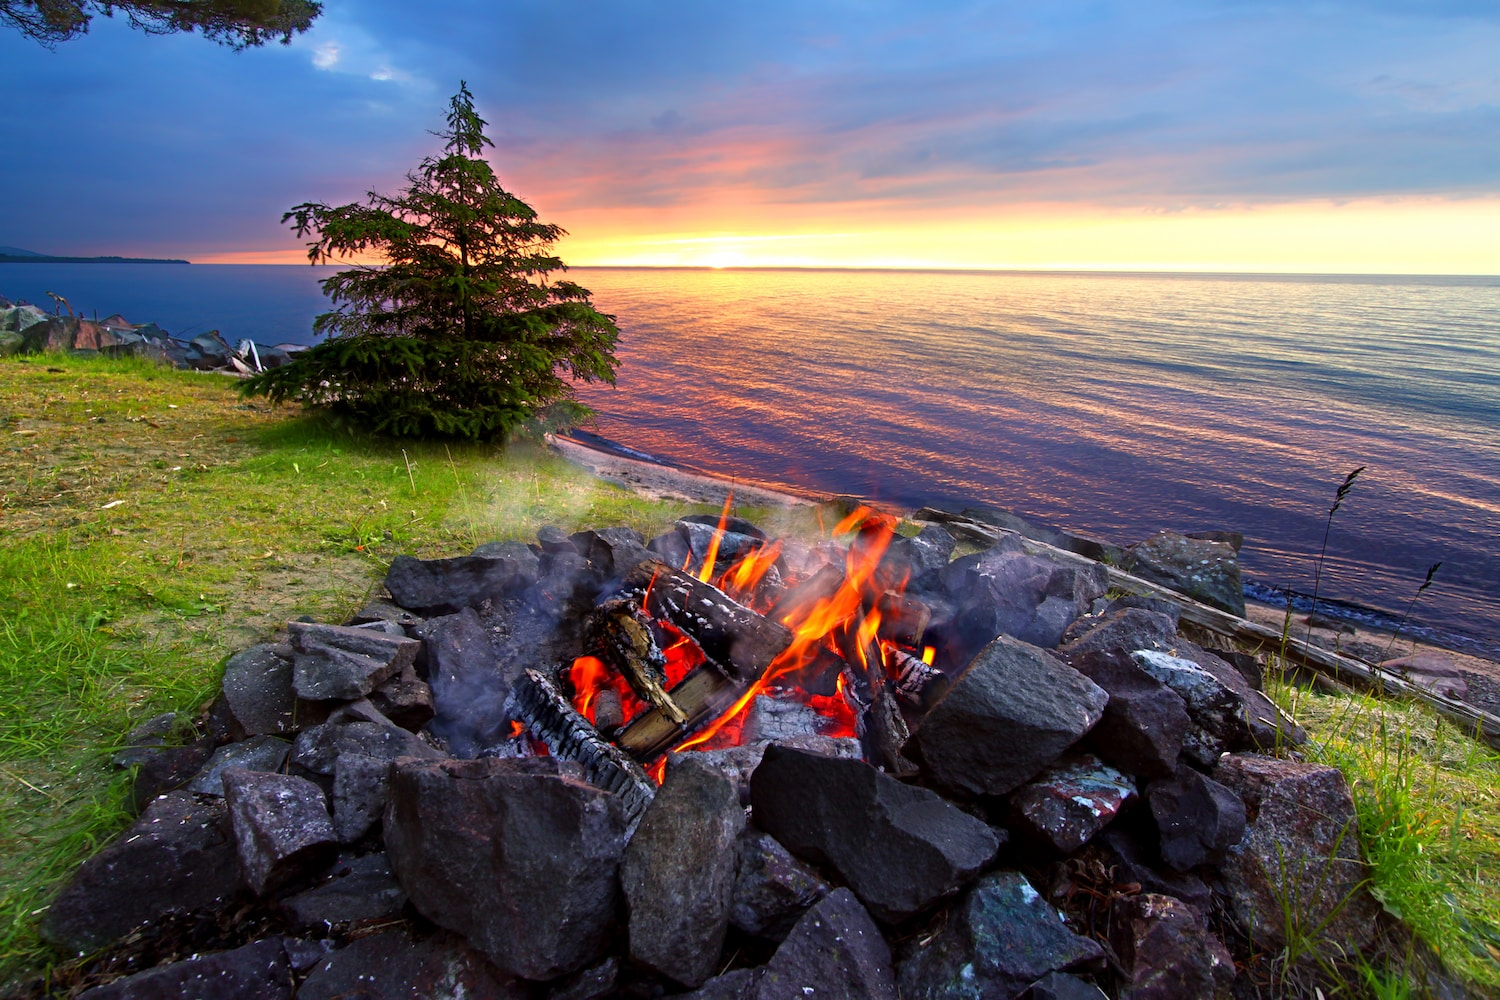 Sunset fire along the beautiful beach of Lake Superior in northern Michigan.